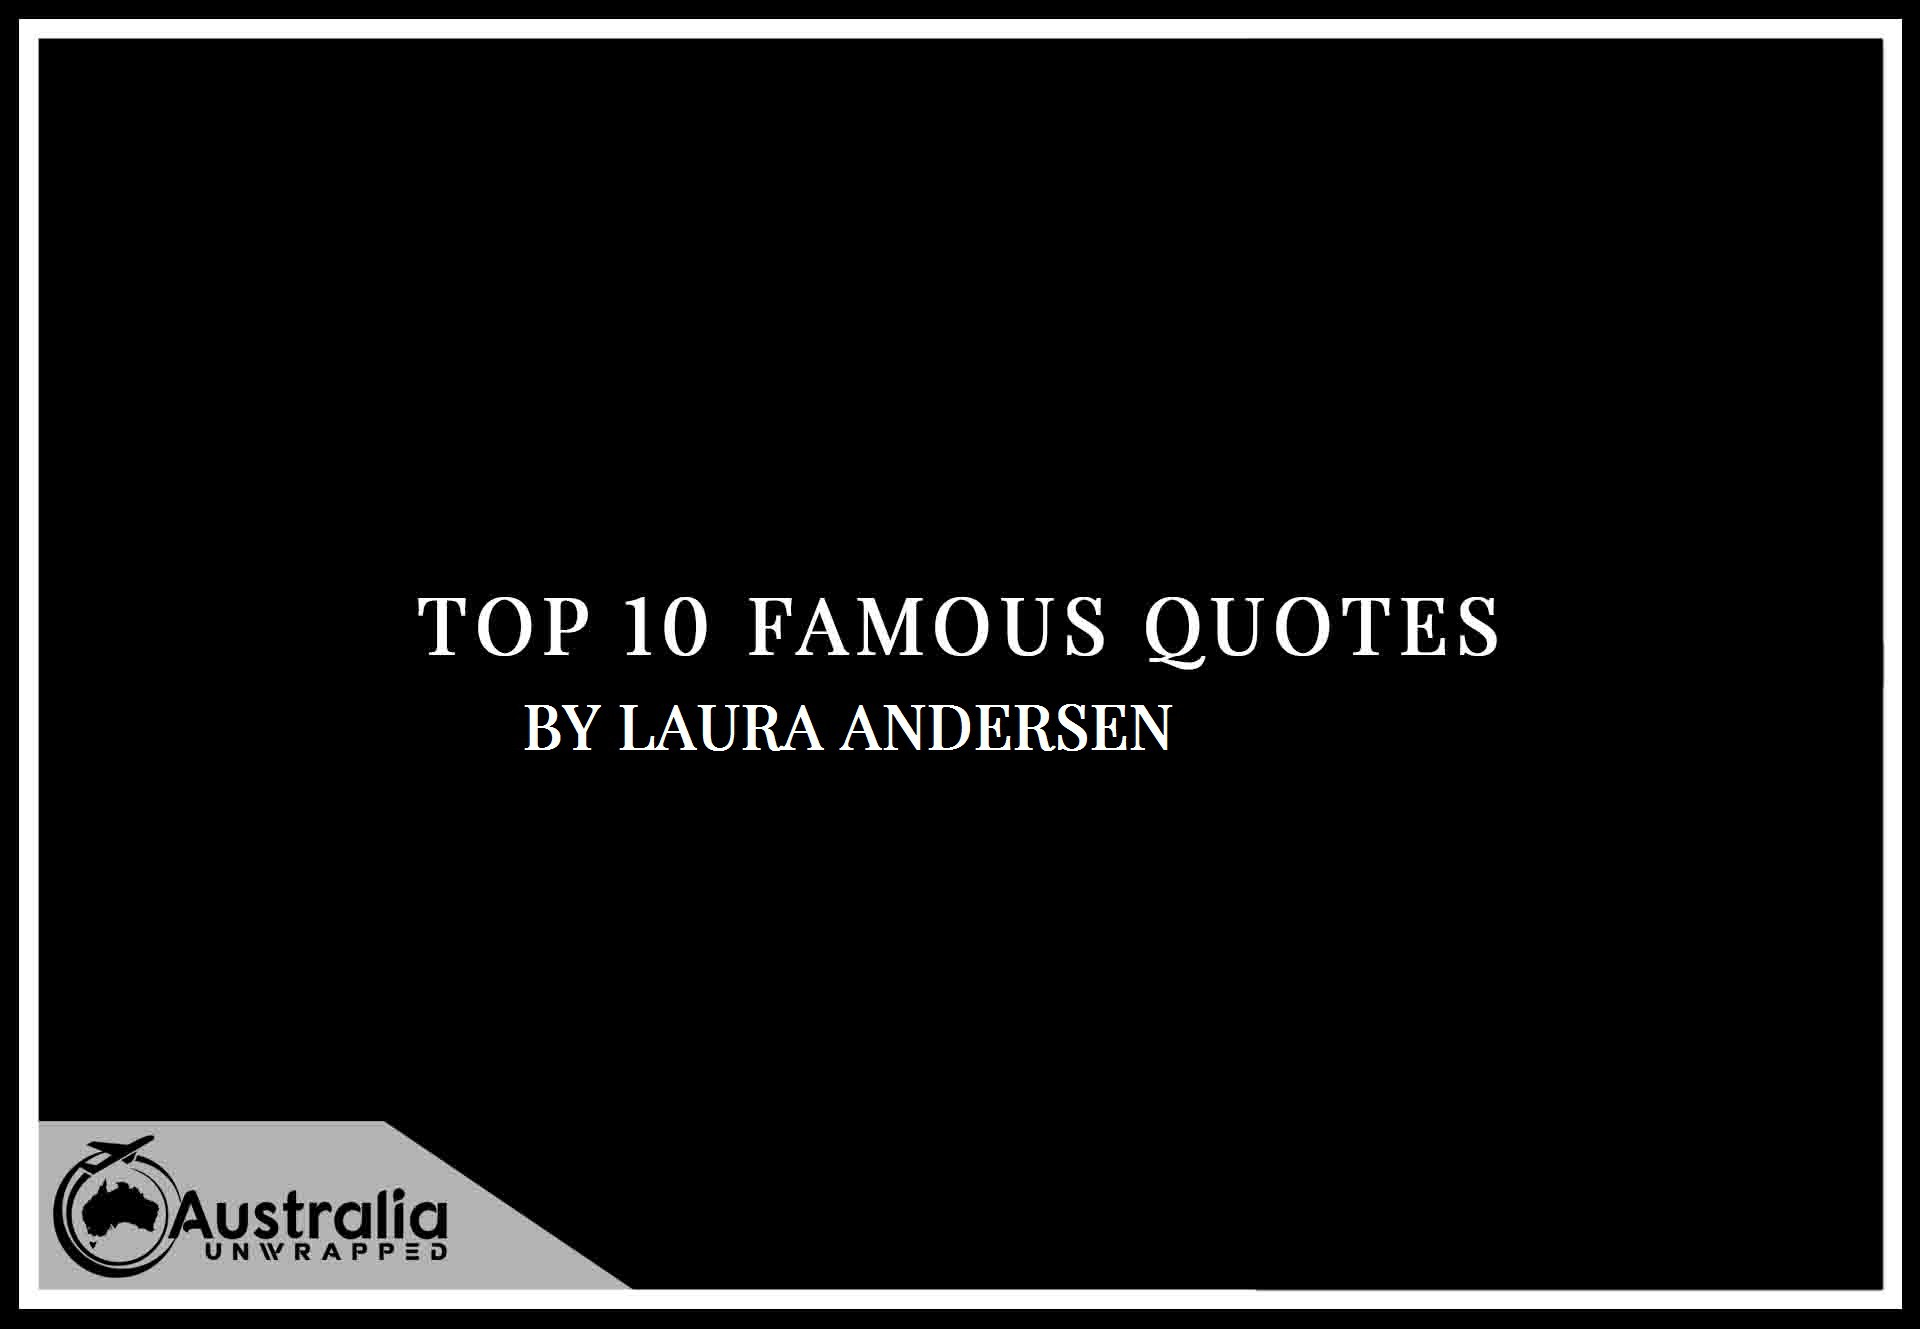 Laura Andersen's Top 10 Popular and Famous Quotes